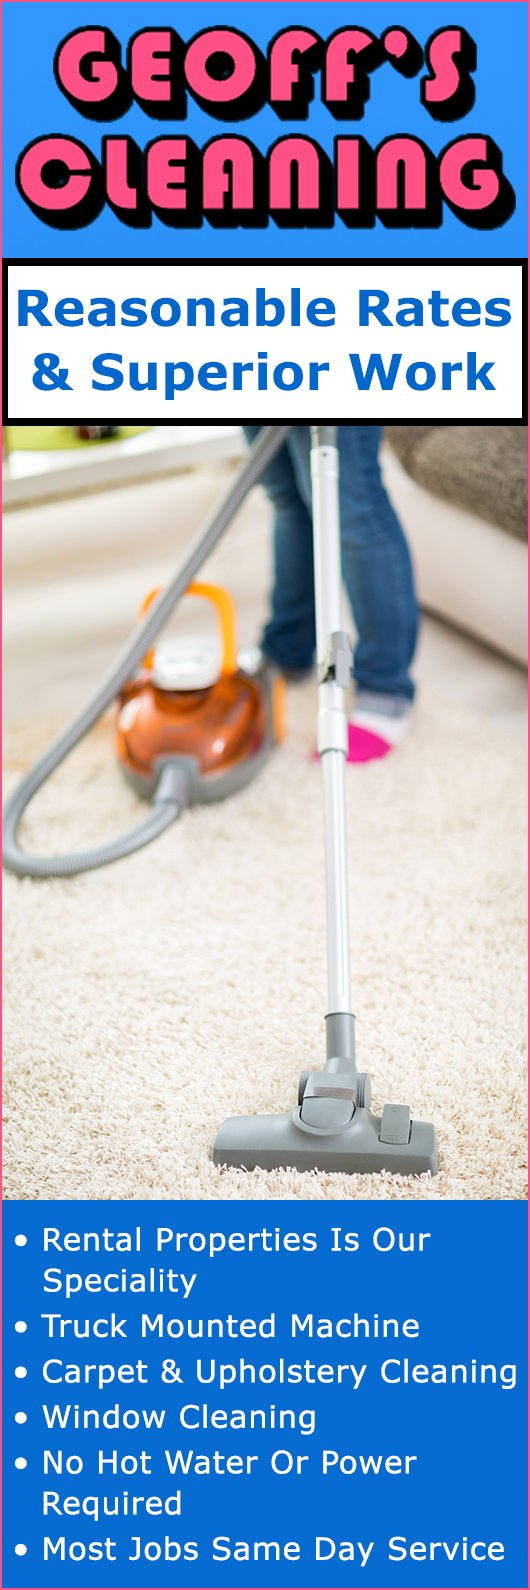 Woolworths carpet cleaner hire cost woolworths carpet cleaner free geoff s carpet steam cleaning promotion carpet steam cleaner hire woolworths with woolworths carpet cleaner hire cost solutioingenieria Choice Image